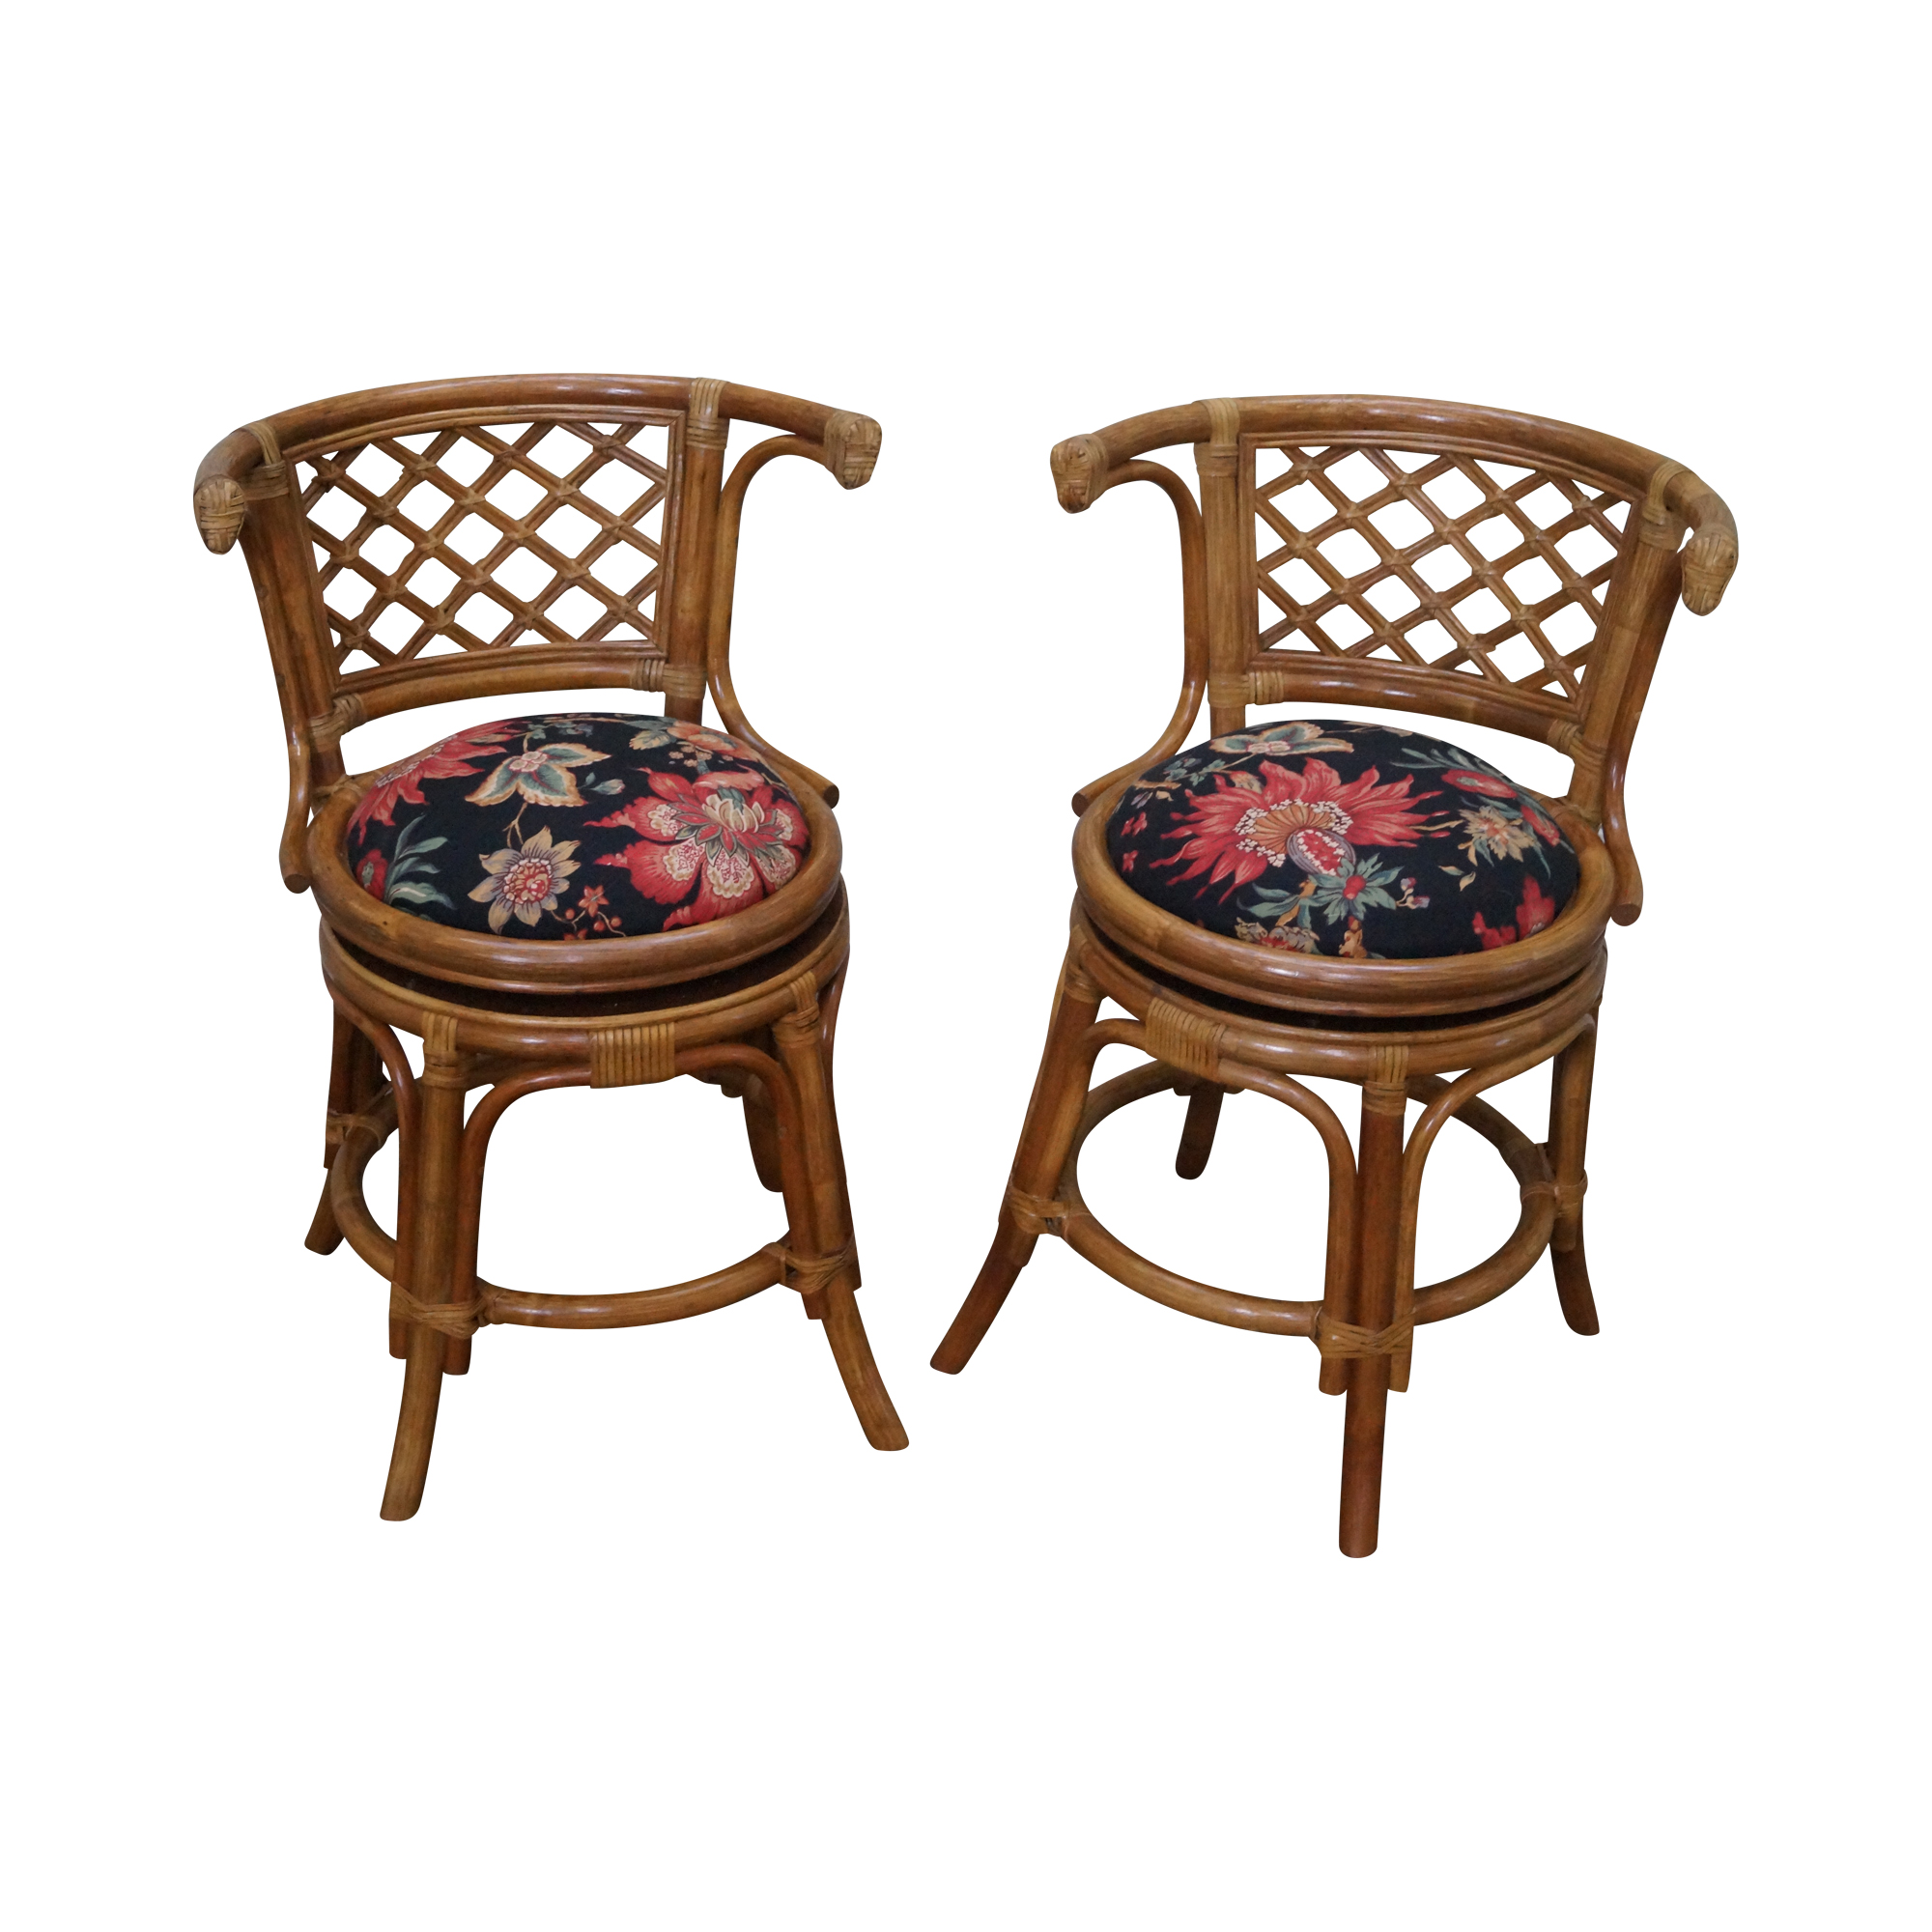 Vintage Rattan Bamboo Swivel Barrel Back Chair 2 Chairish